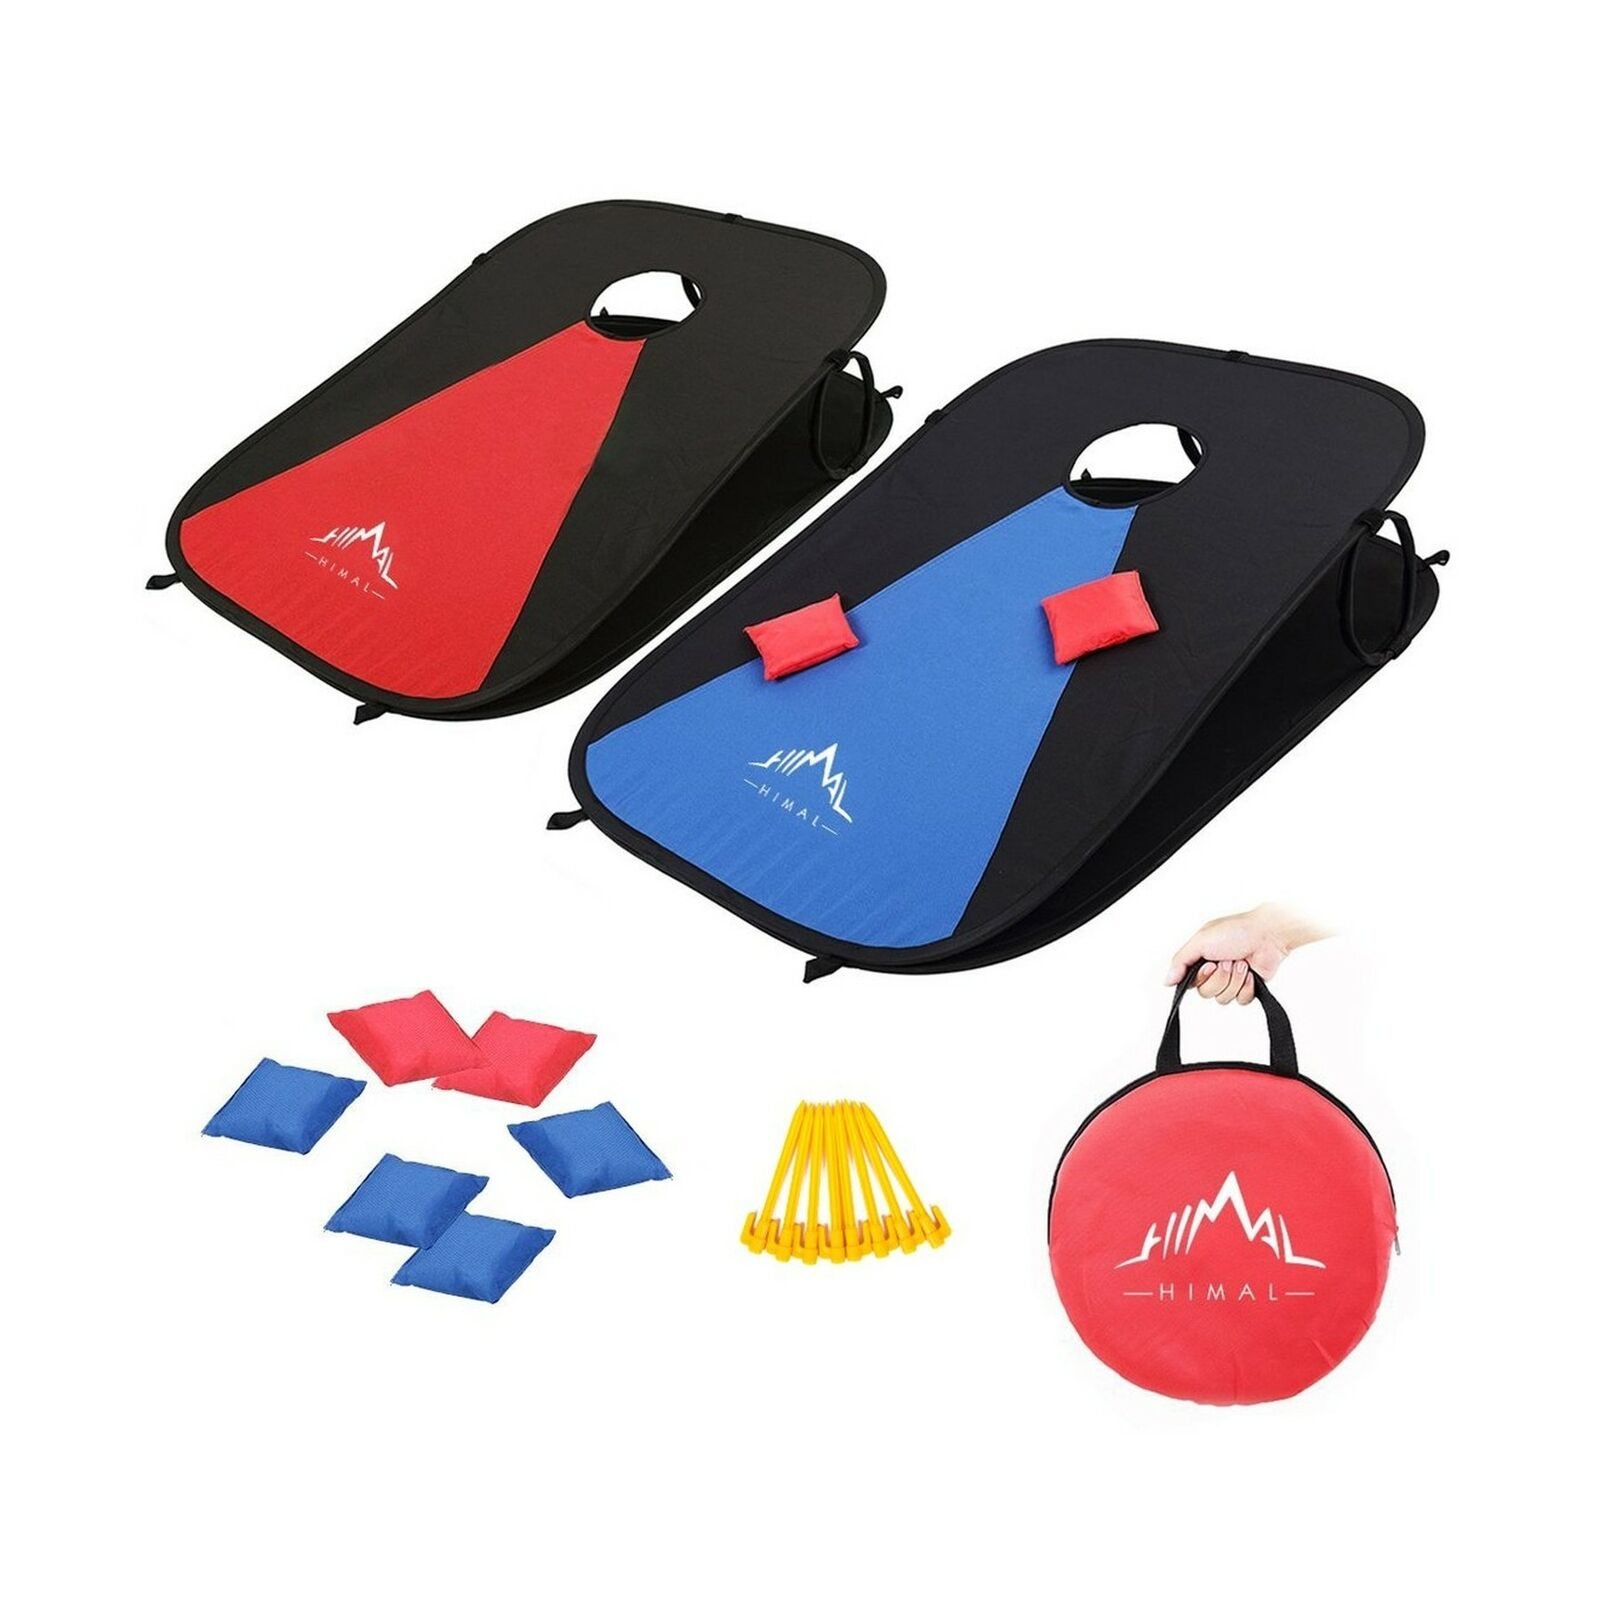 3 x 2 Collapsible Portable Target with 8 Bean Bags for Indoor and Outdoor Play Sea World Kids Tic-Tac-Toe Corn-Hole Board for Boys and Girls MOOCY Cornhole Bean Bag Toss Game